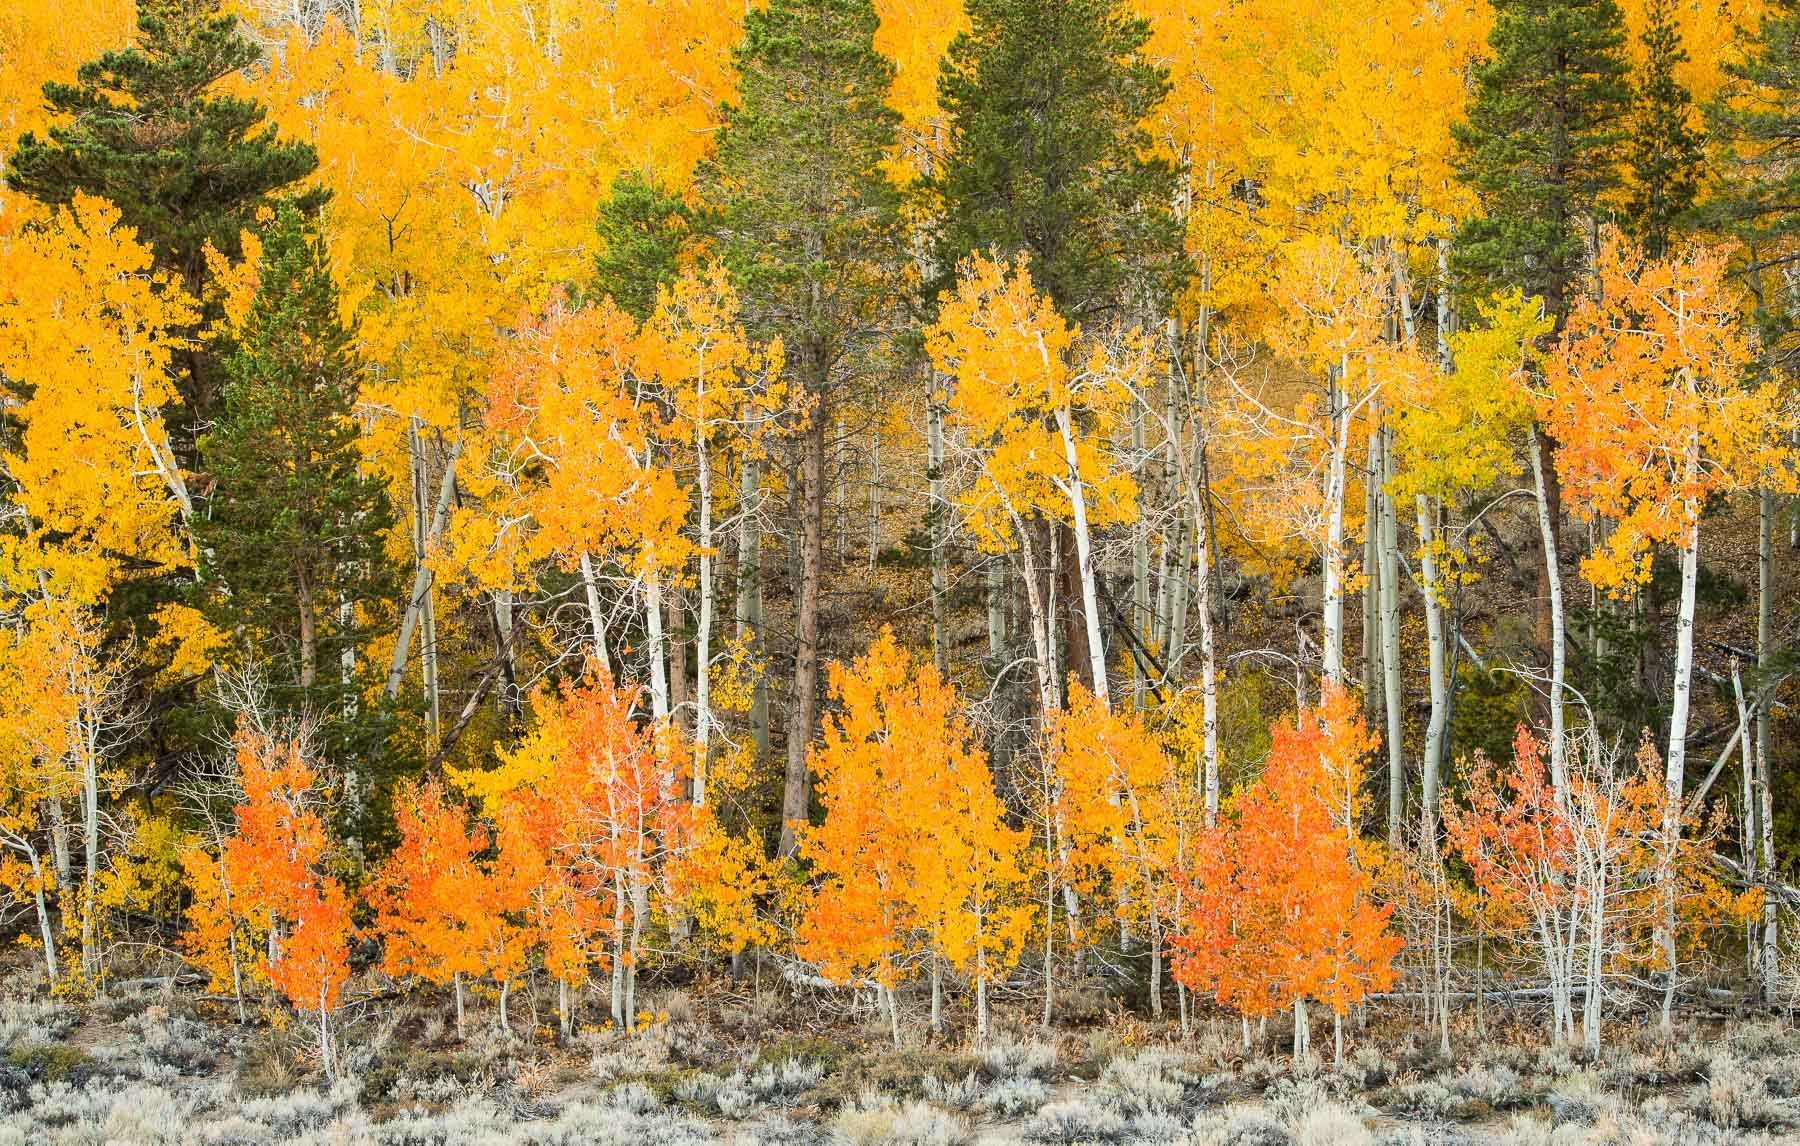 Fall Aspen in the Eastern Sierra, California